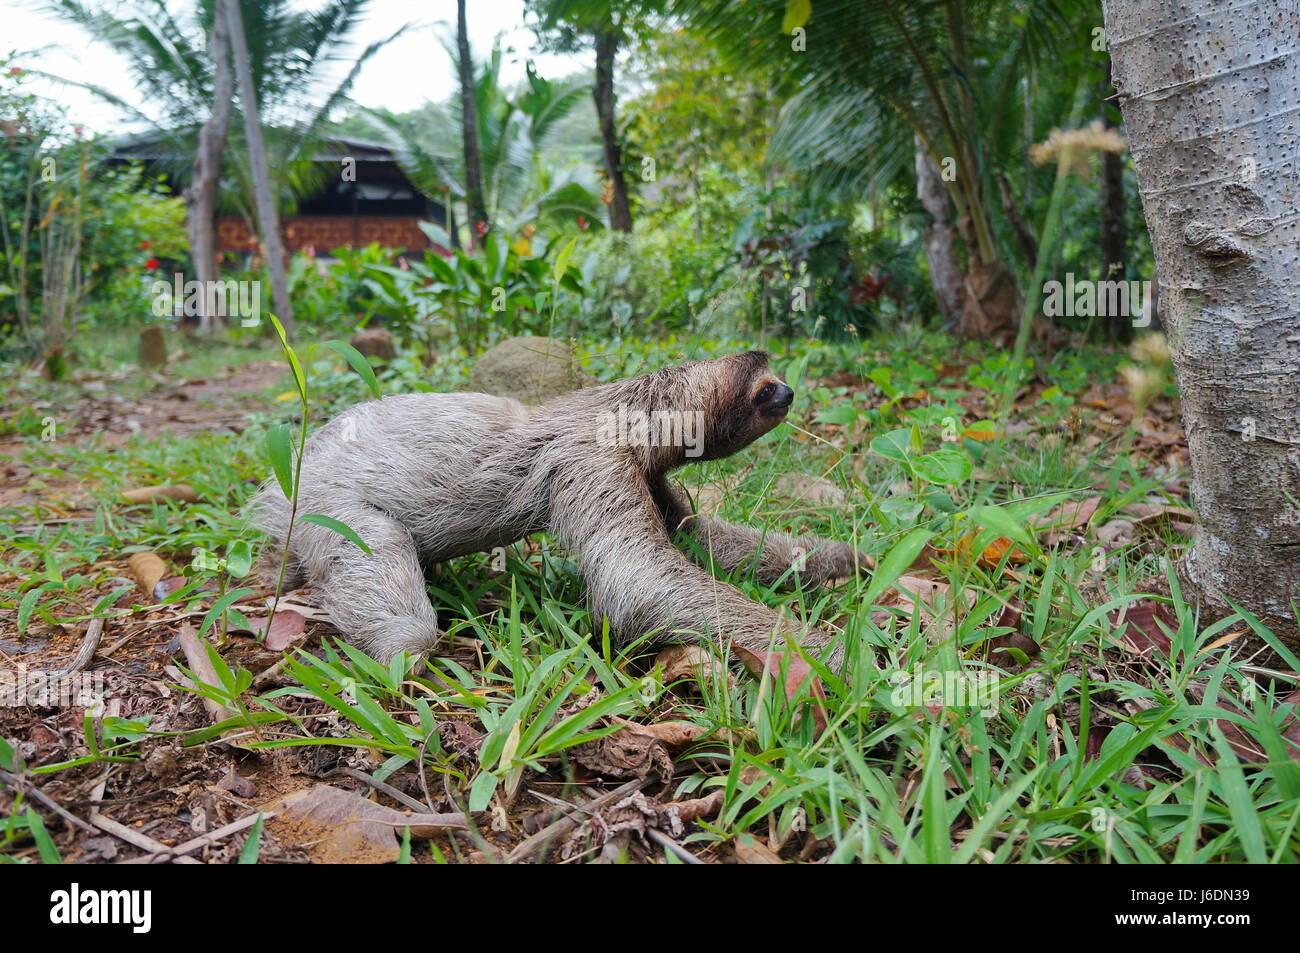 A three-toed sloth crawling on the ground in a garden near an house, Panama, Central America Stock Photo